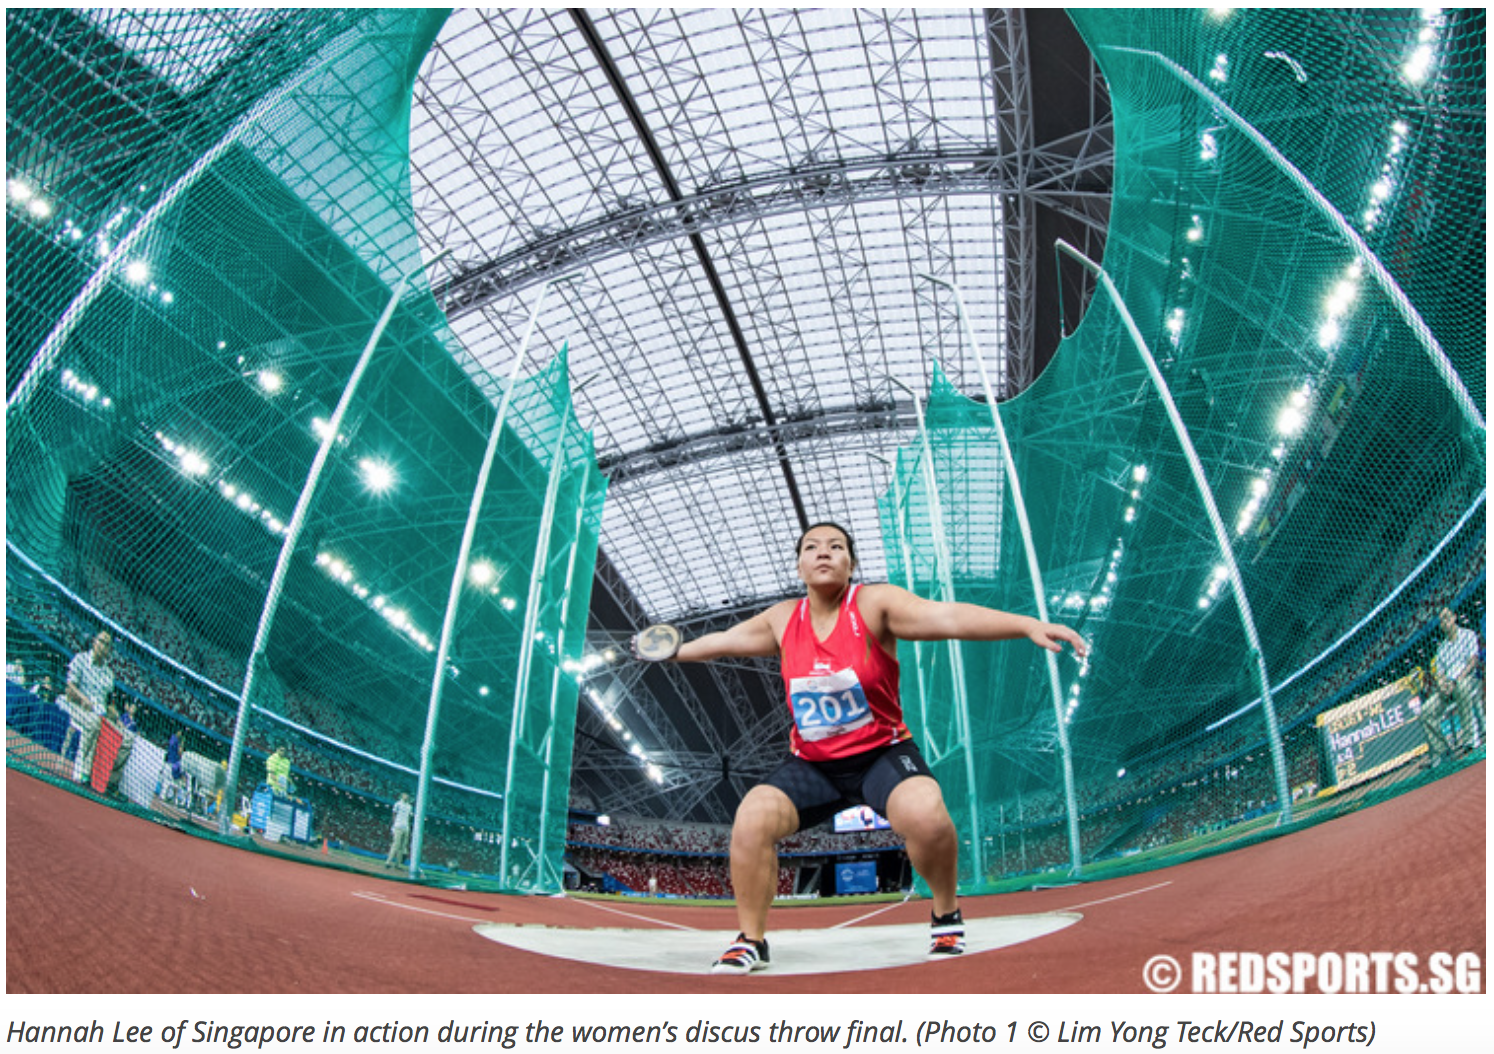 Women's discus throw, 28th Southeast Asian Games for Red Sports (www.redsports.sg)